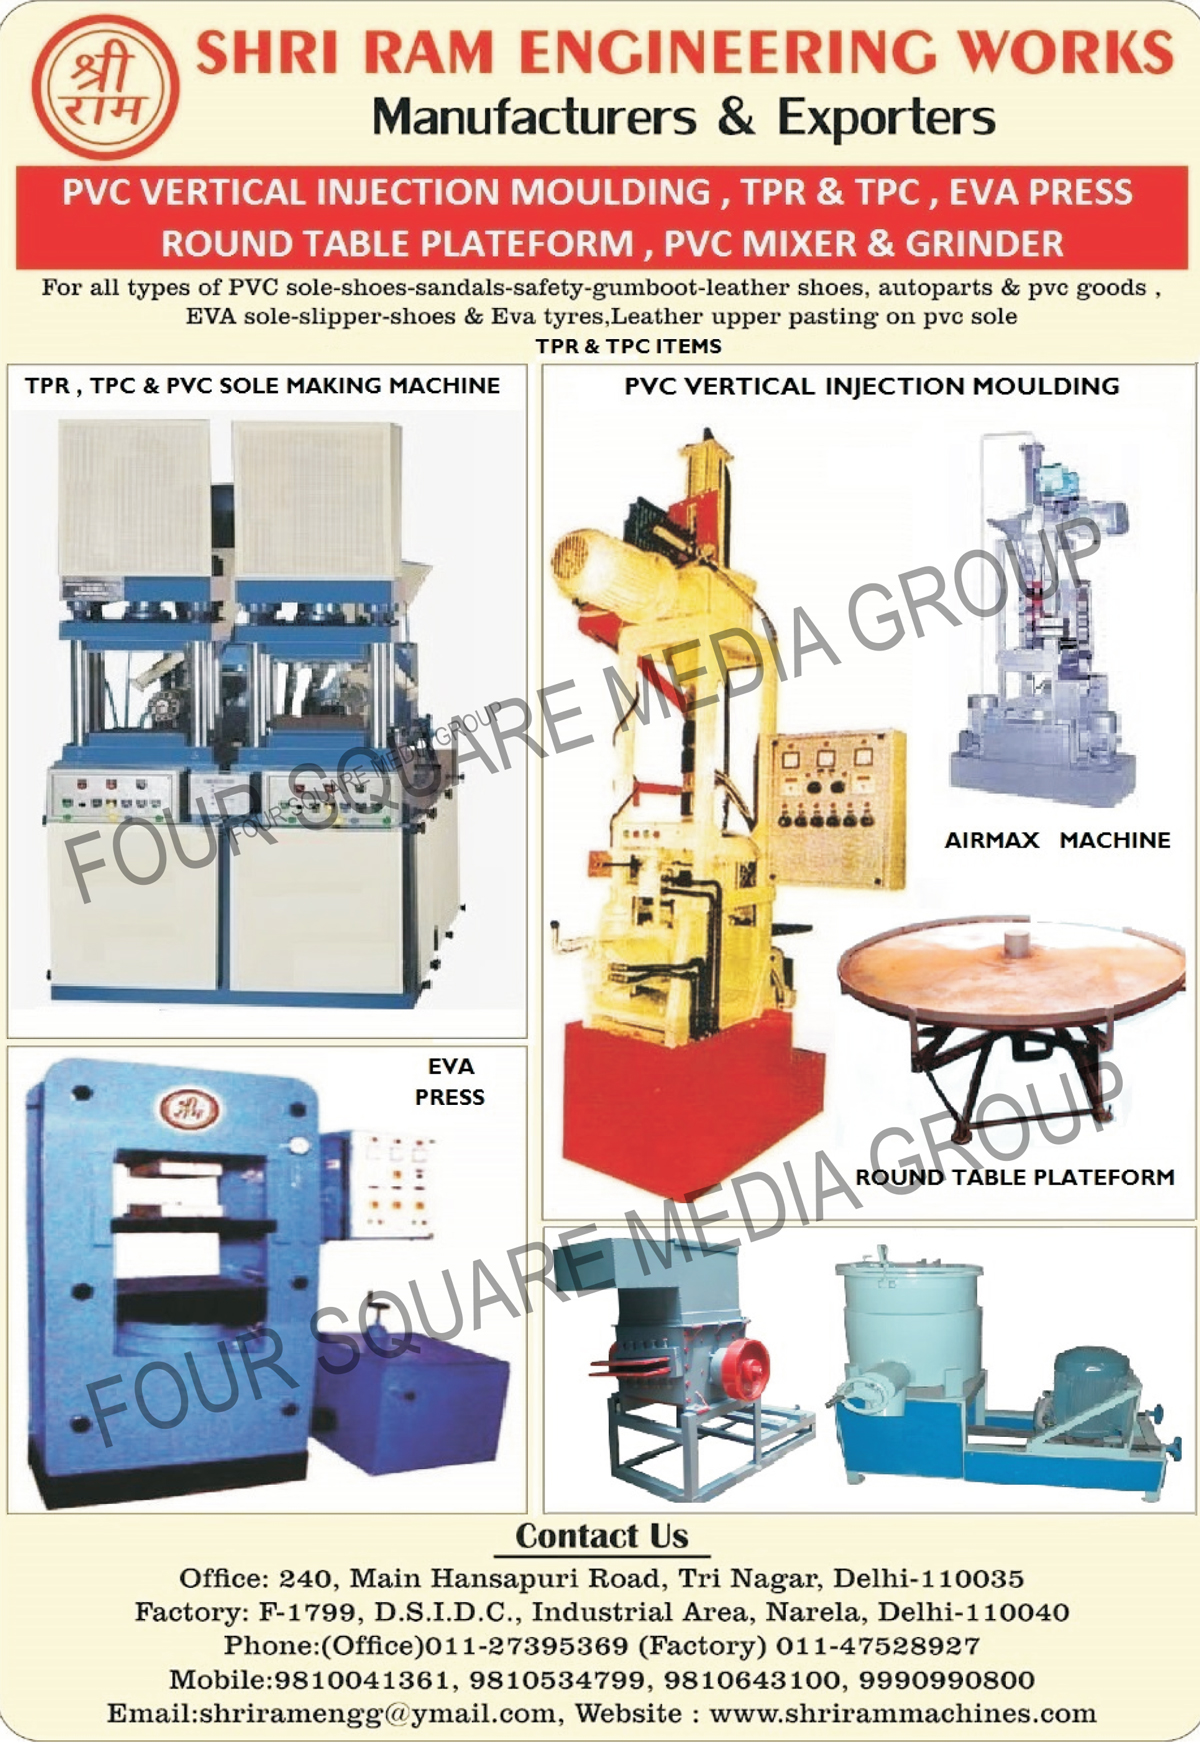 TRR Sole Making Machines, TPC Sole Making Machines, PVC Sole Making Machines, PVC Vertical Injection Moulding Machines, Airmax Machines, Round Table Plateforms, EVA Presses, PVC Mixers, PVC Grinders